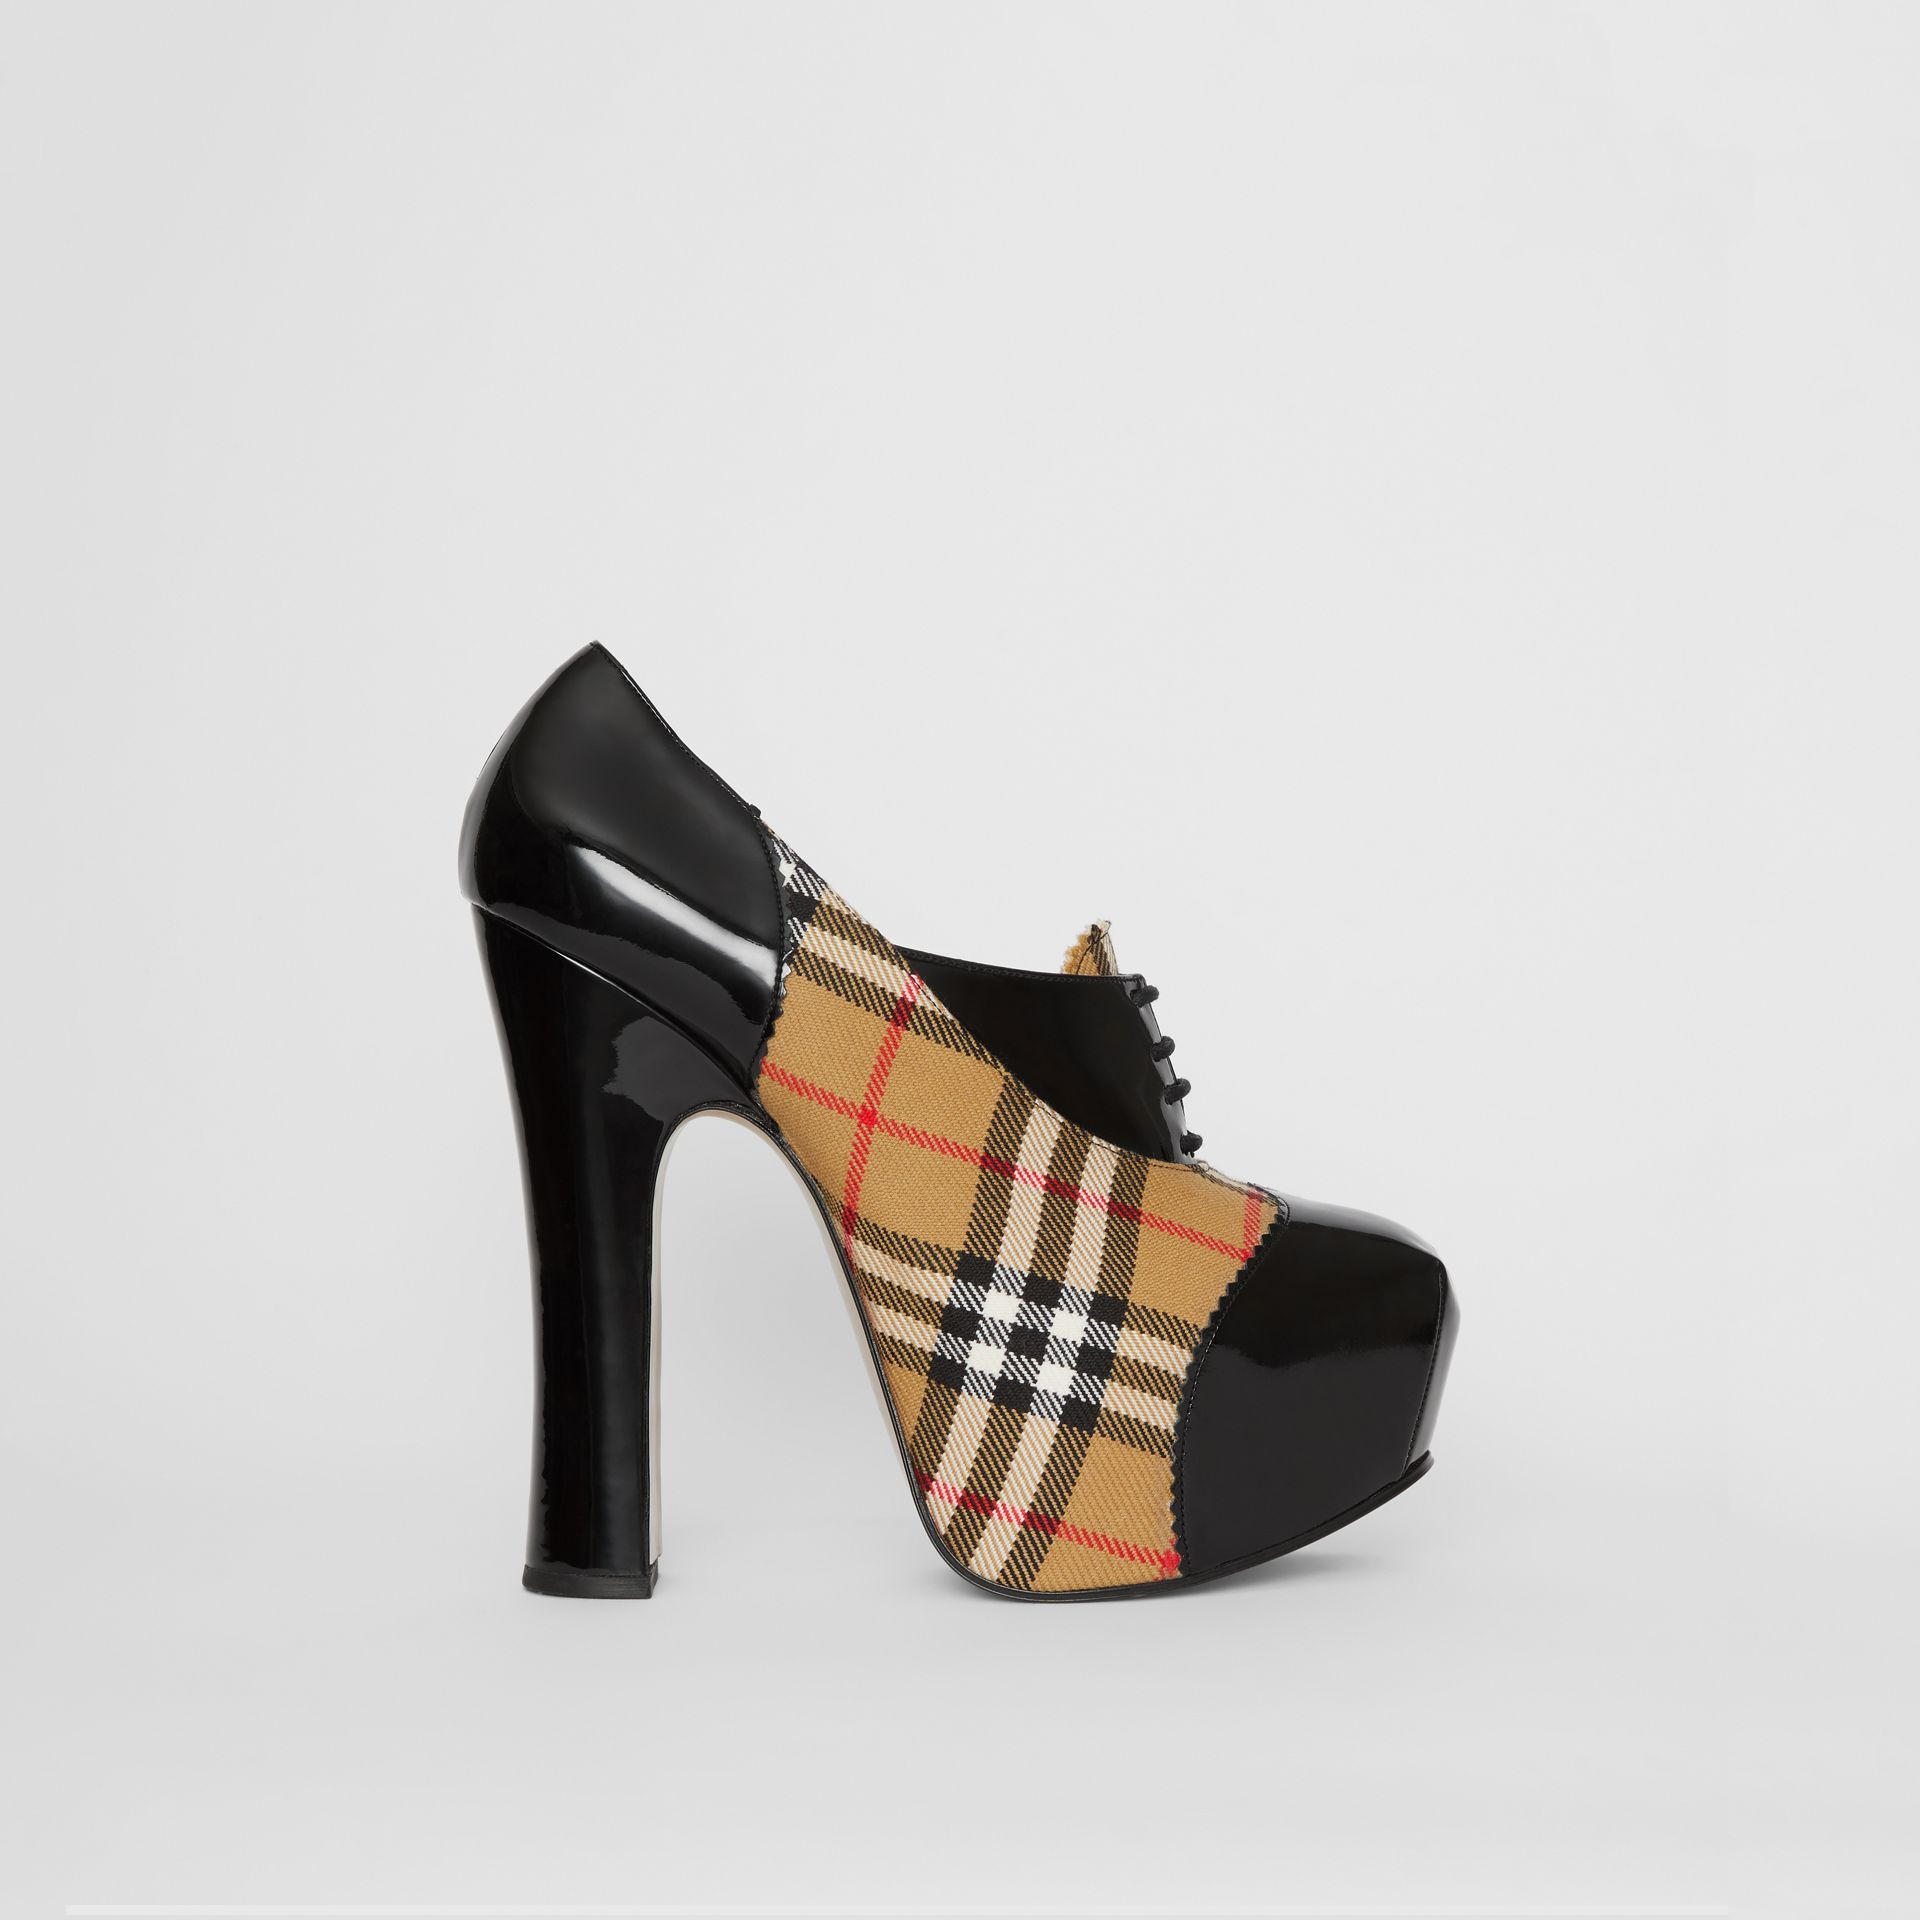 Vintage Check and Patent Lace-up Platforms in Black | Burberry - gallery image 4